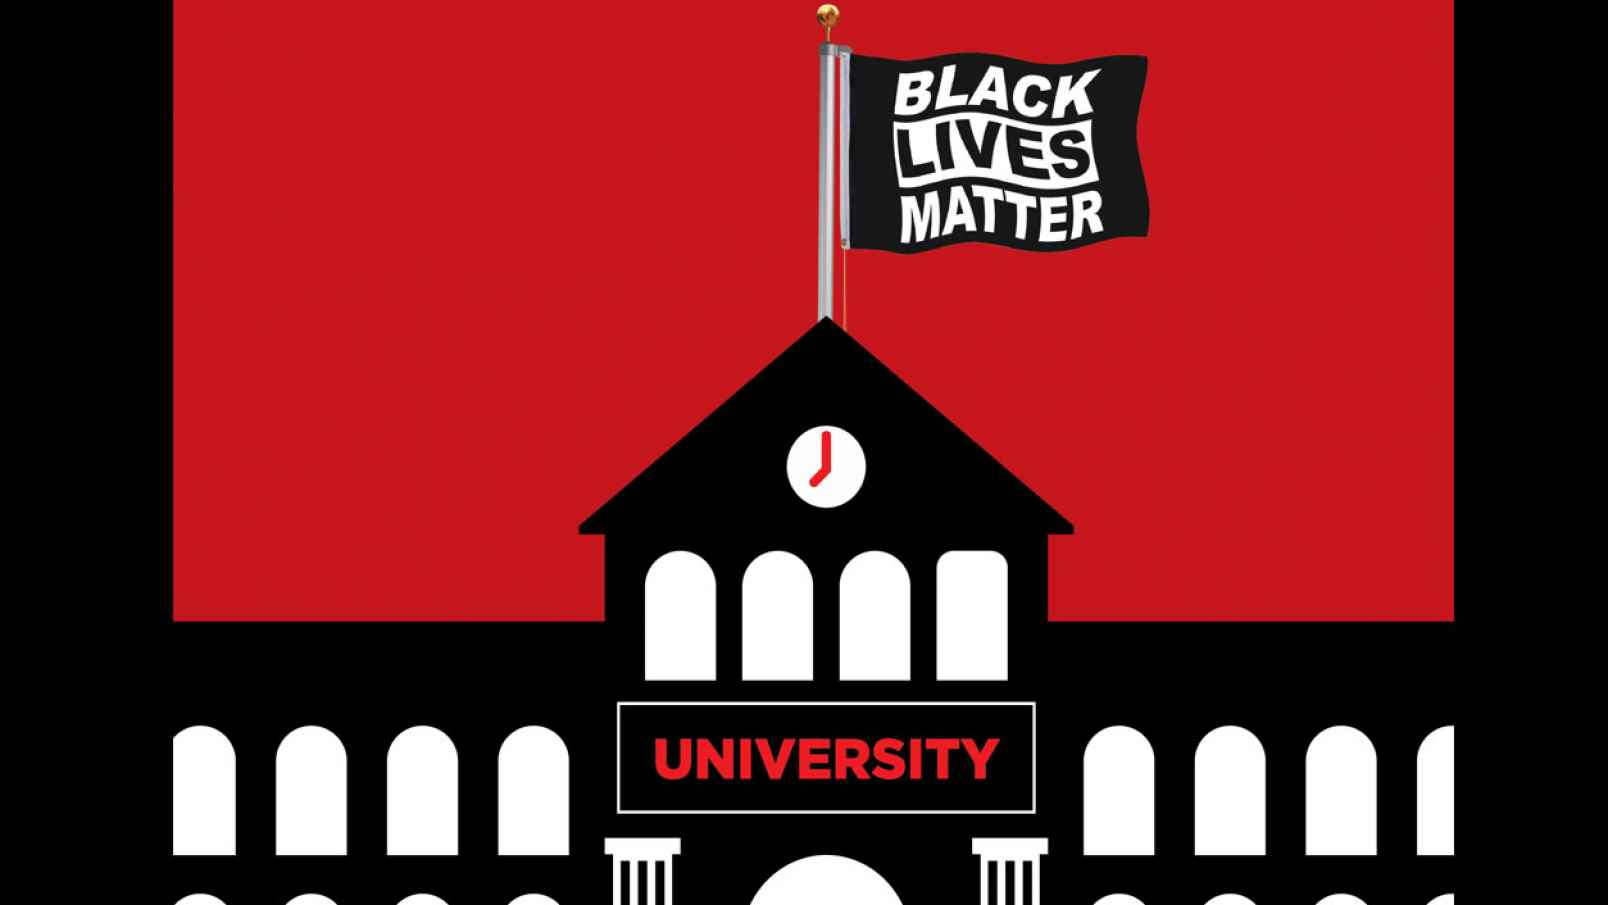 Social Media Blitz Exposes Campus Racism Triggered by Critical Race Theory - Frontpagemag